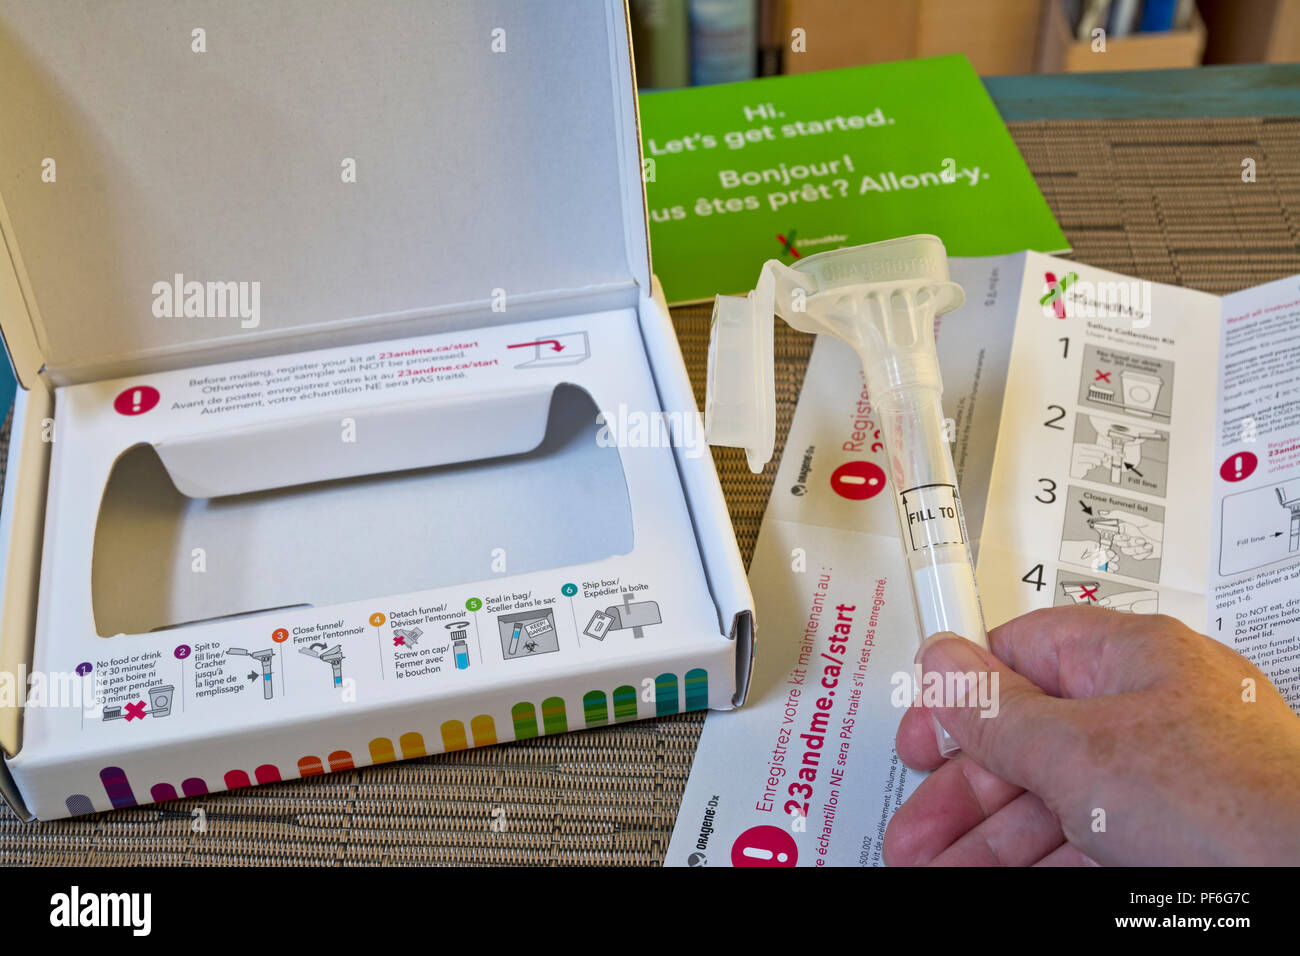 23andme home genetic testing kit.  Person holding saliva collection tube with the rest of the kit. - Stock Image